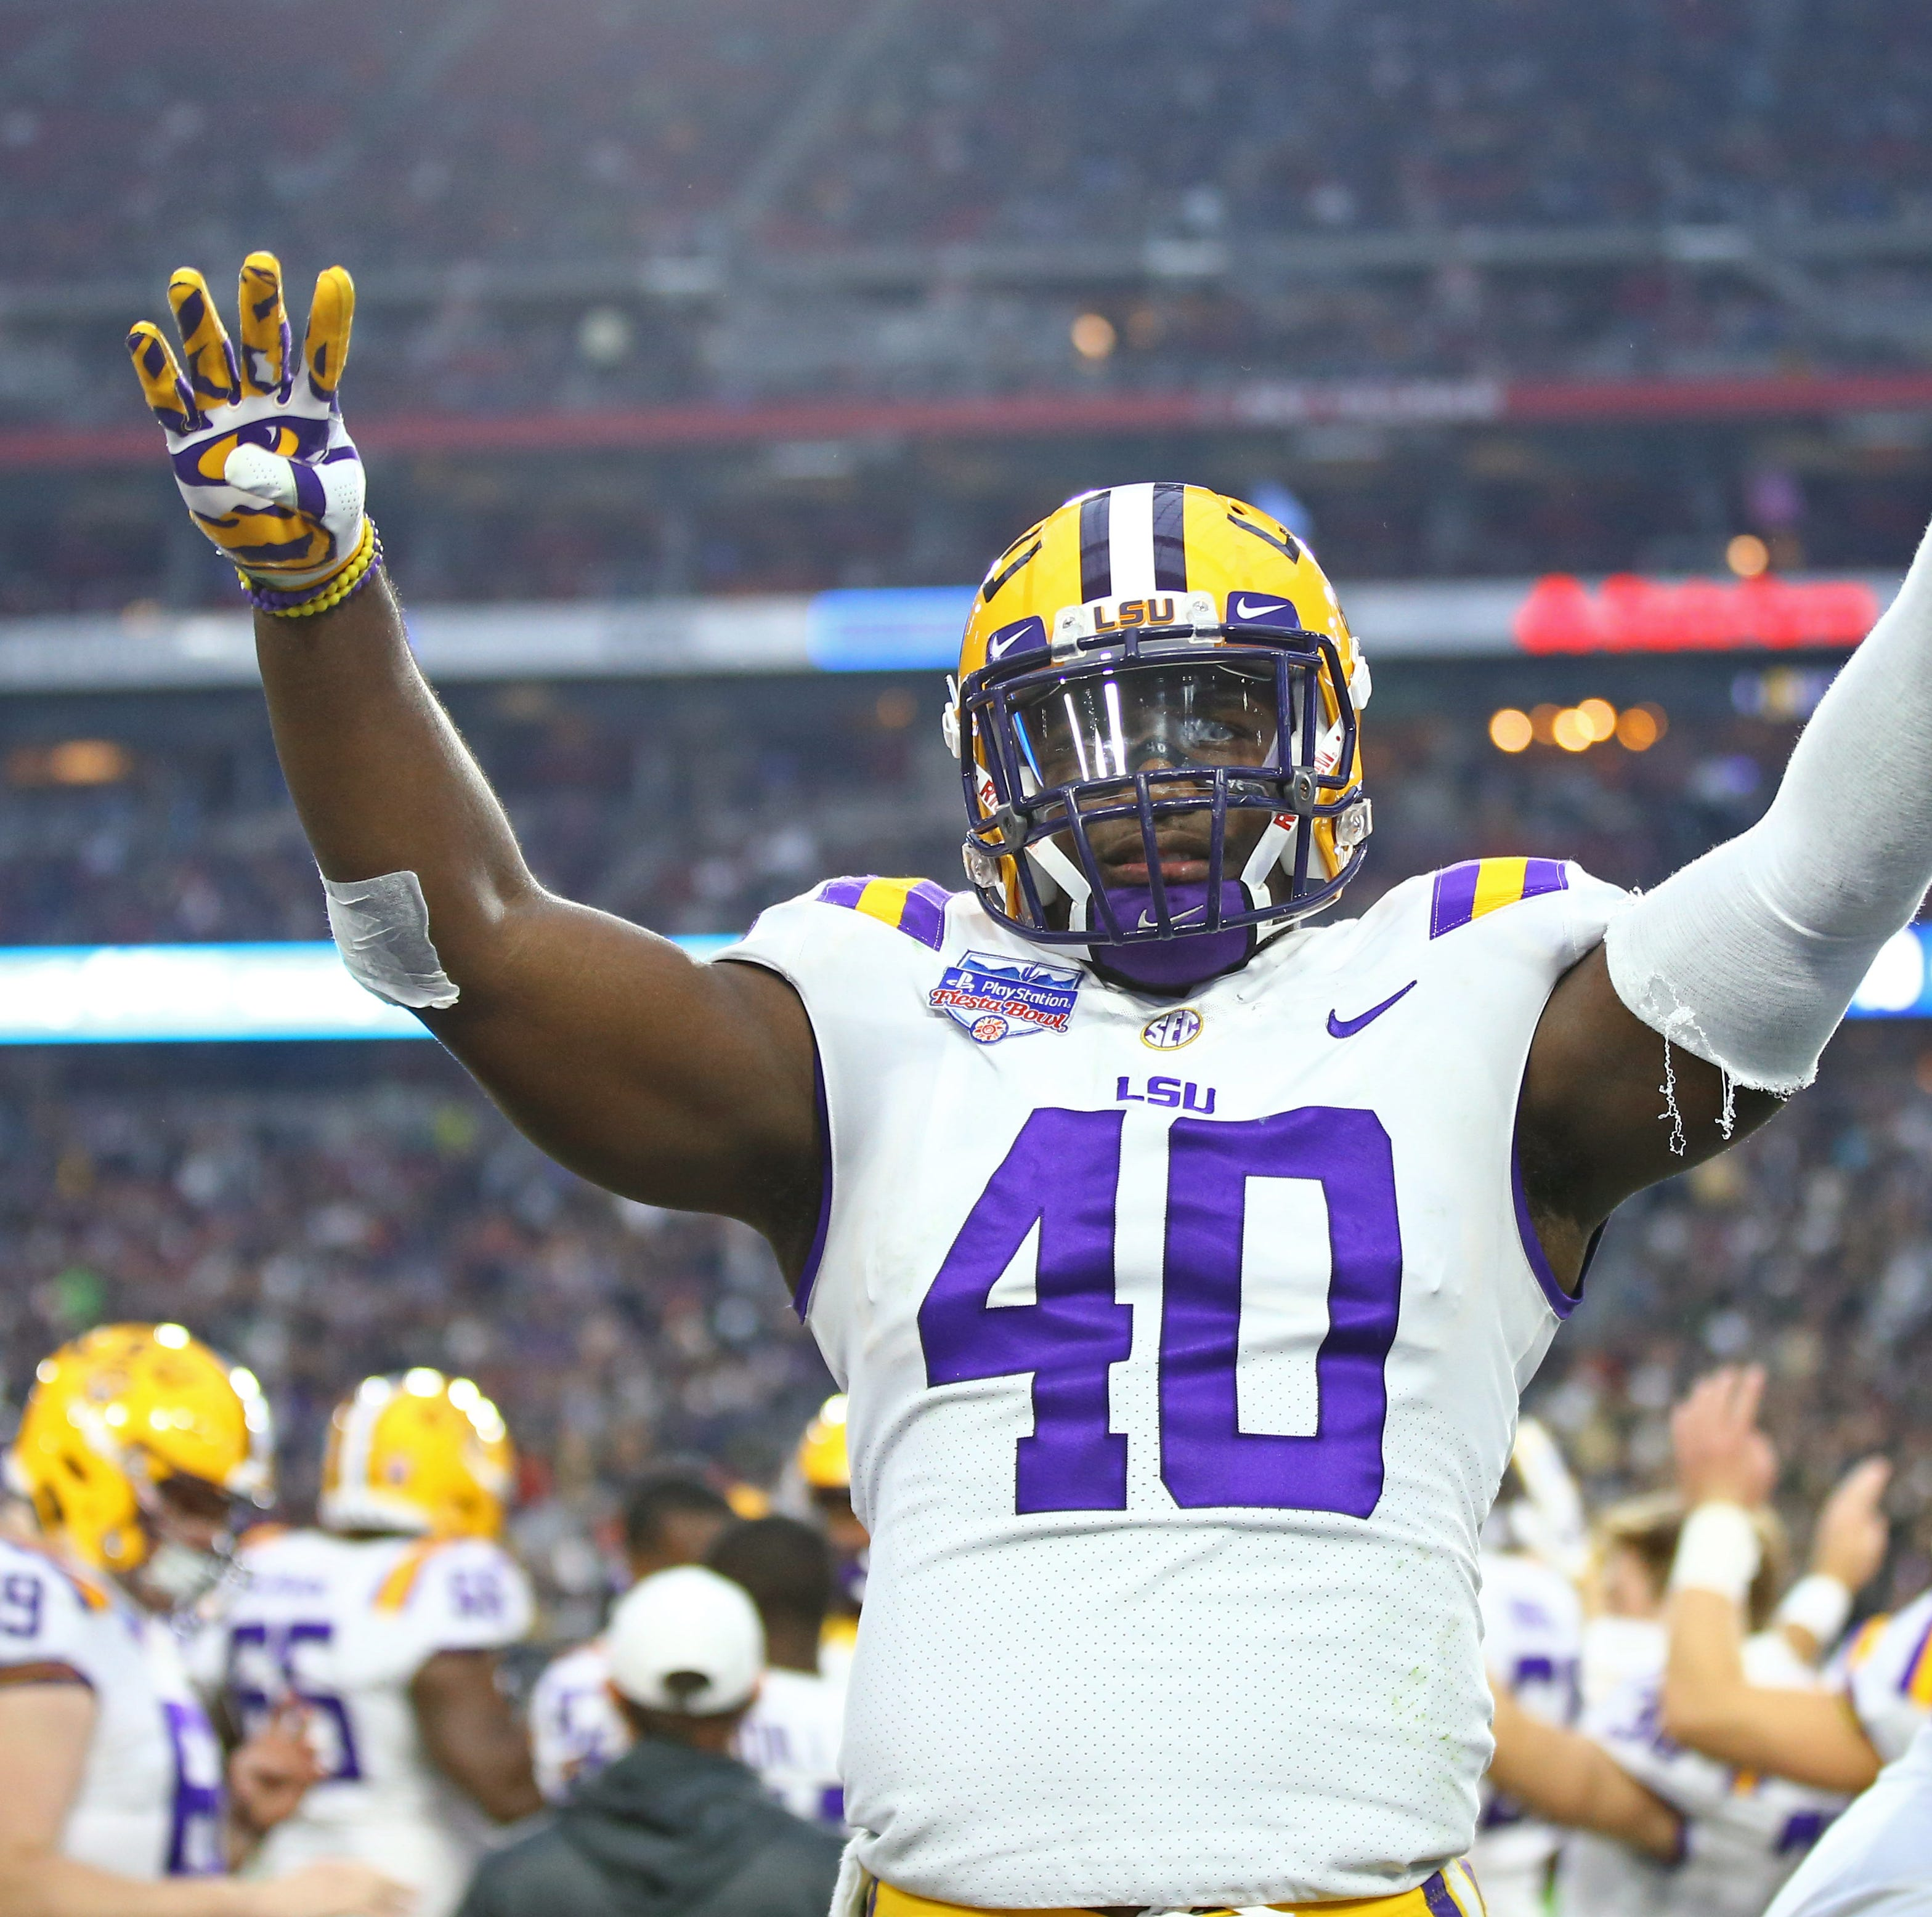 Voices of the SEC: LSU, Kentucky pick up big bowl wins while Alabama heads to title game